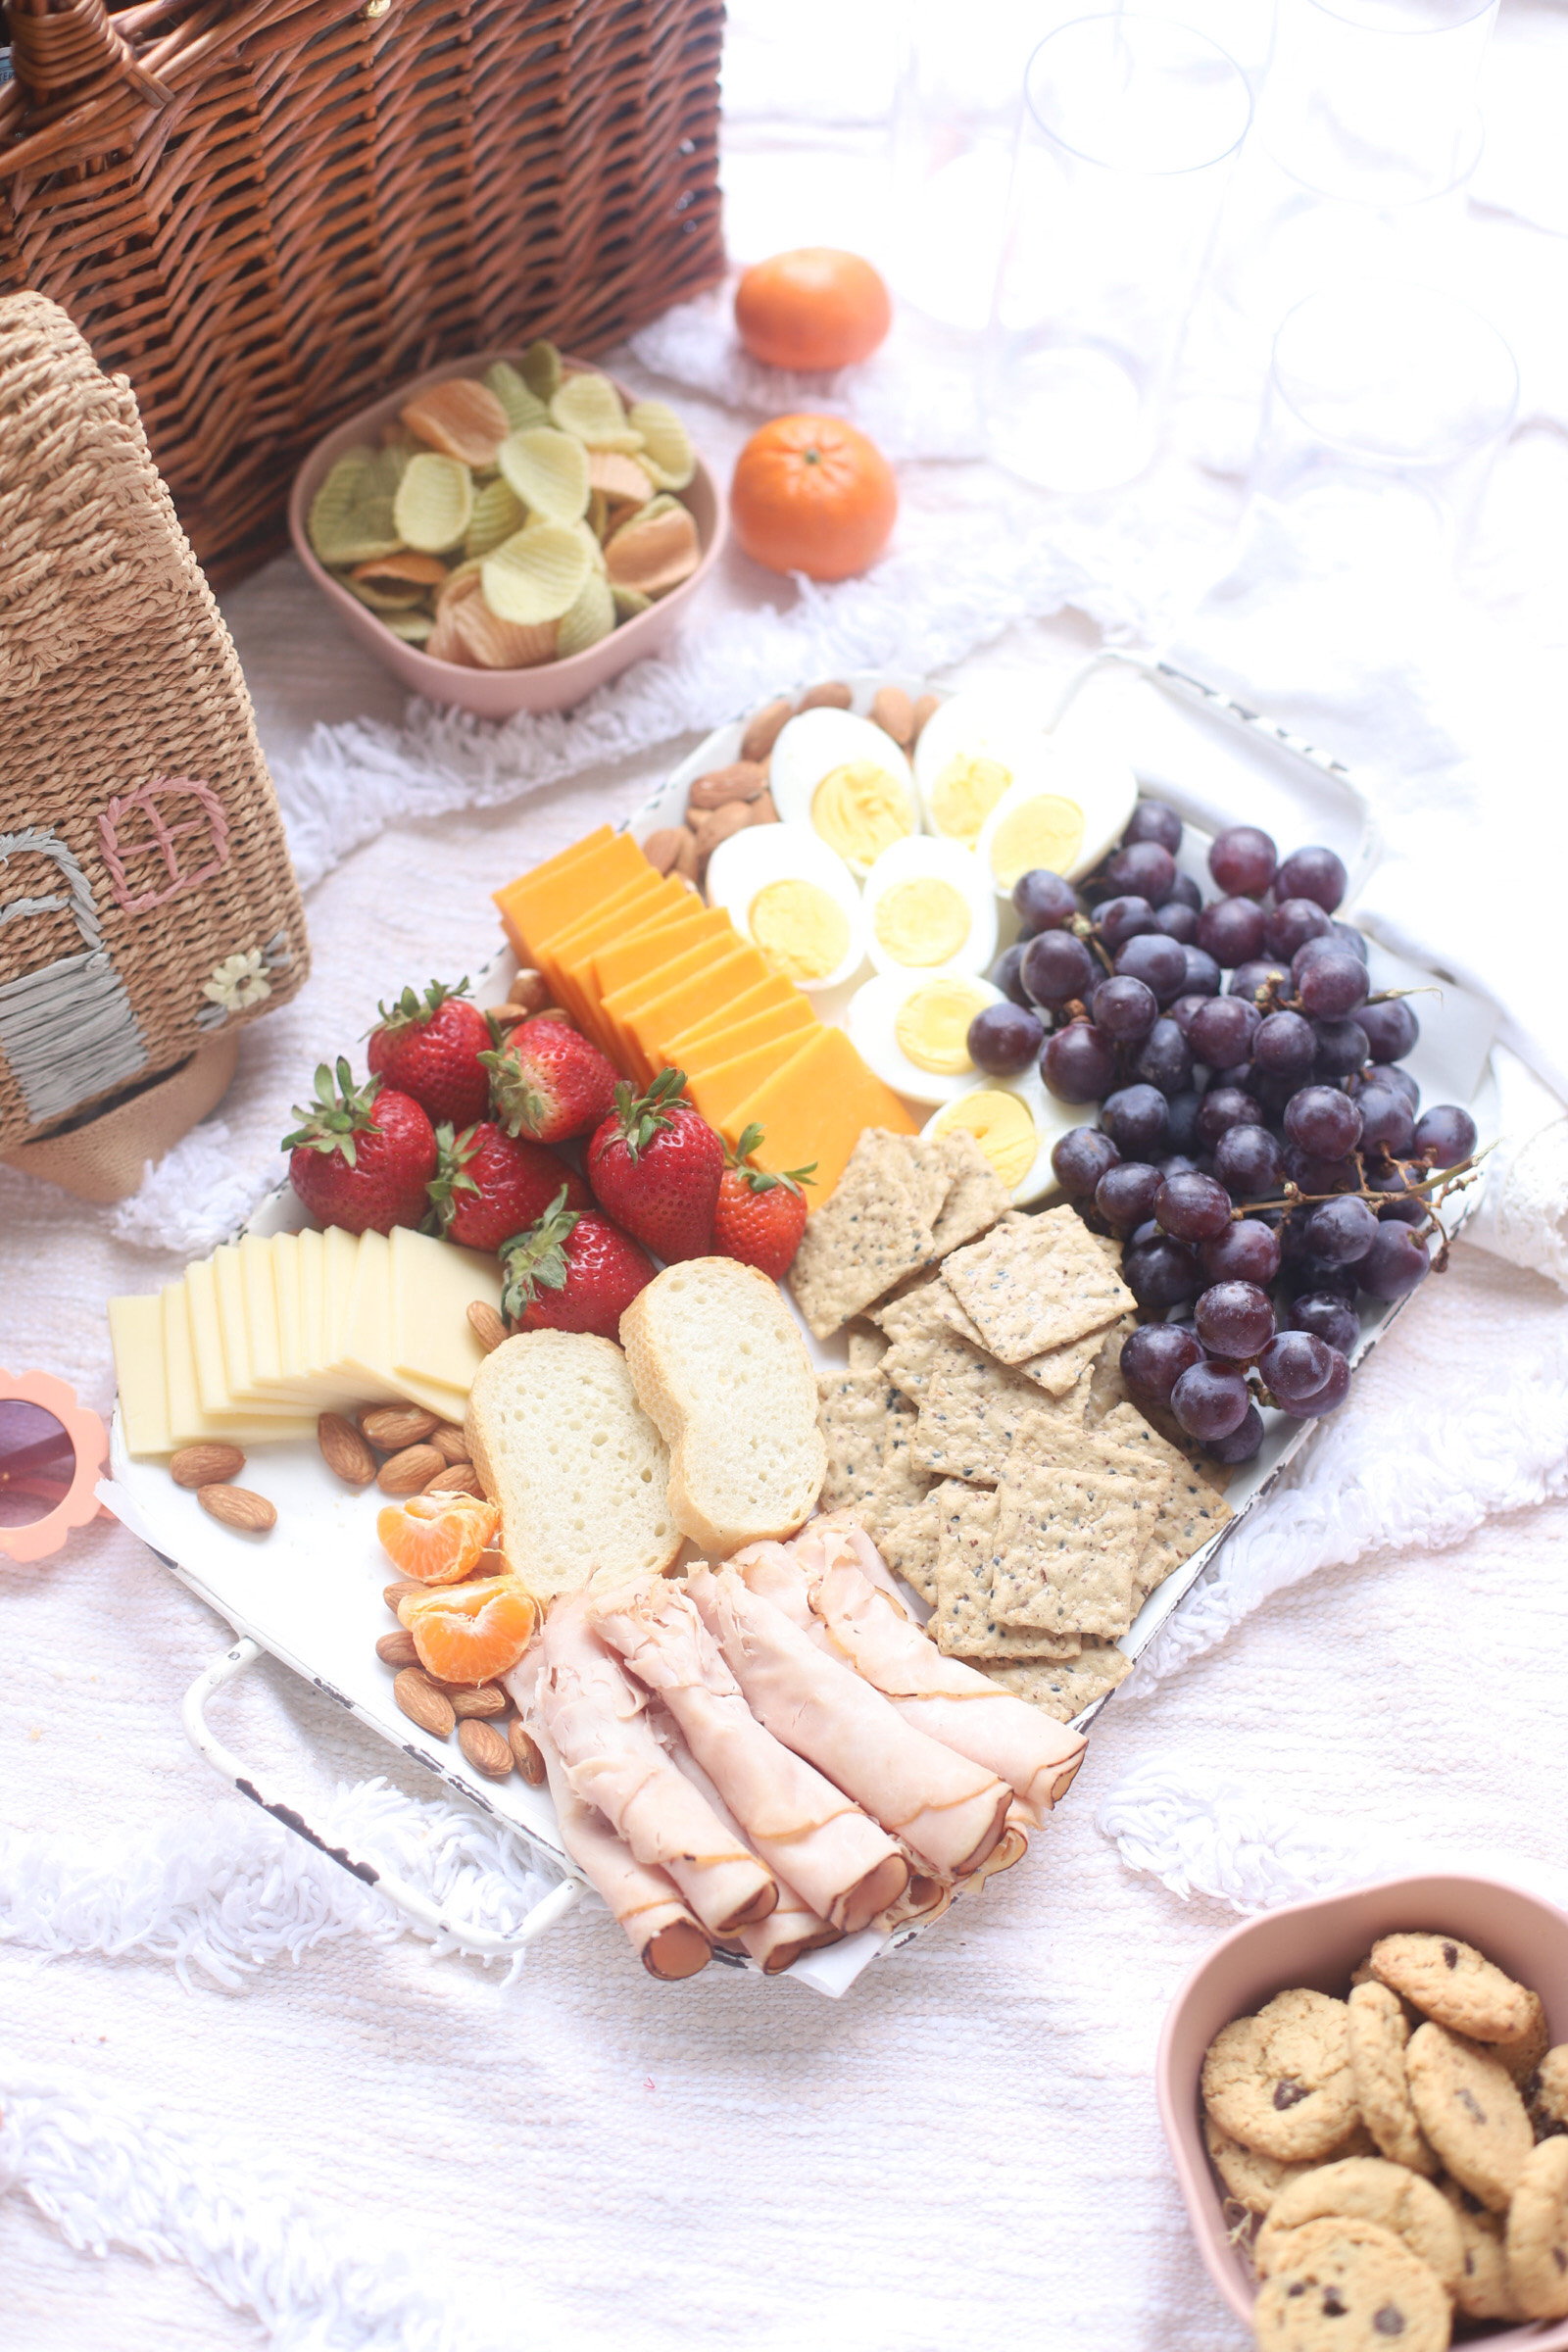 a charcuterie board with fruits, meat. crackers, cheese, and egg